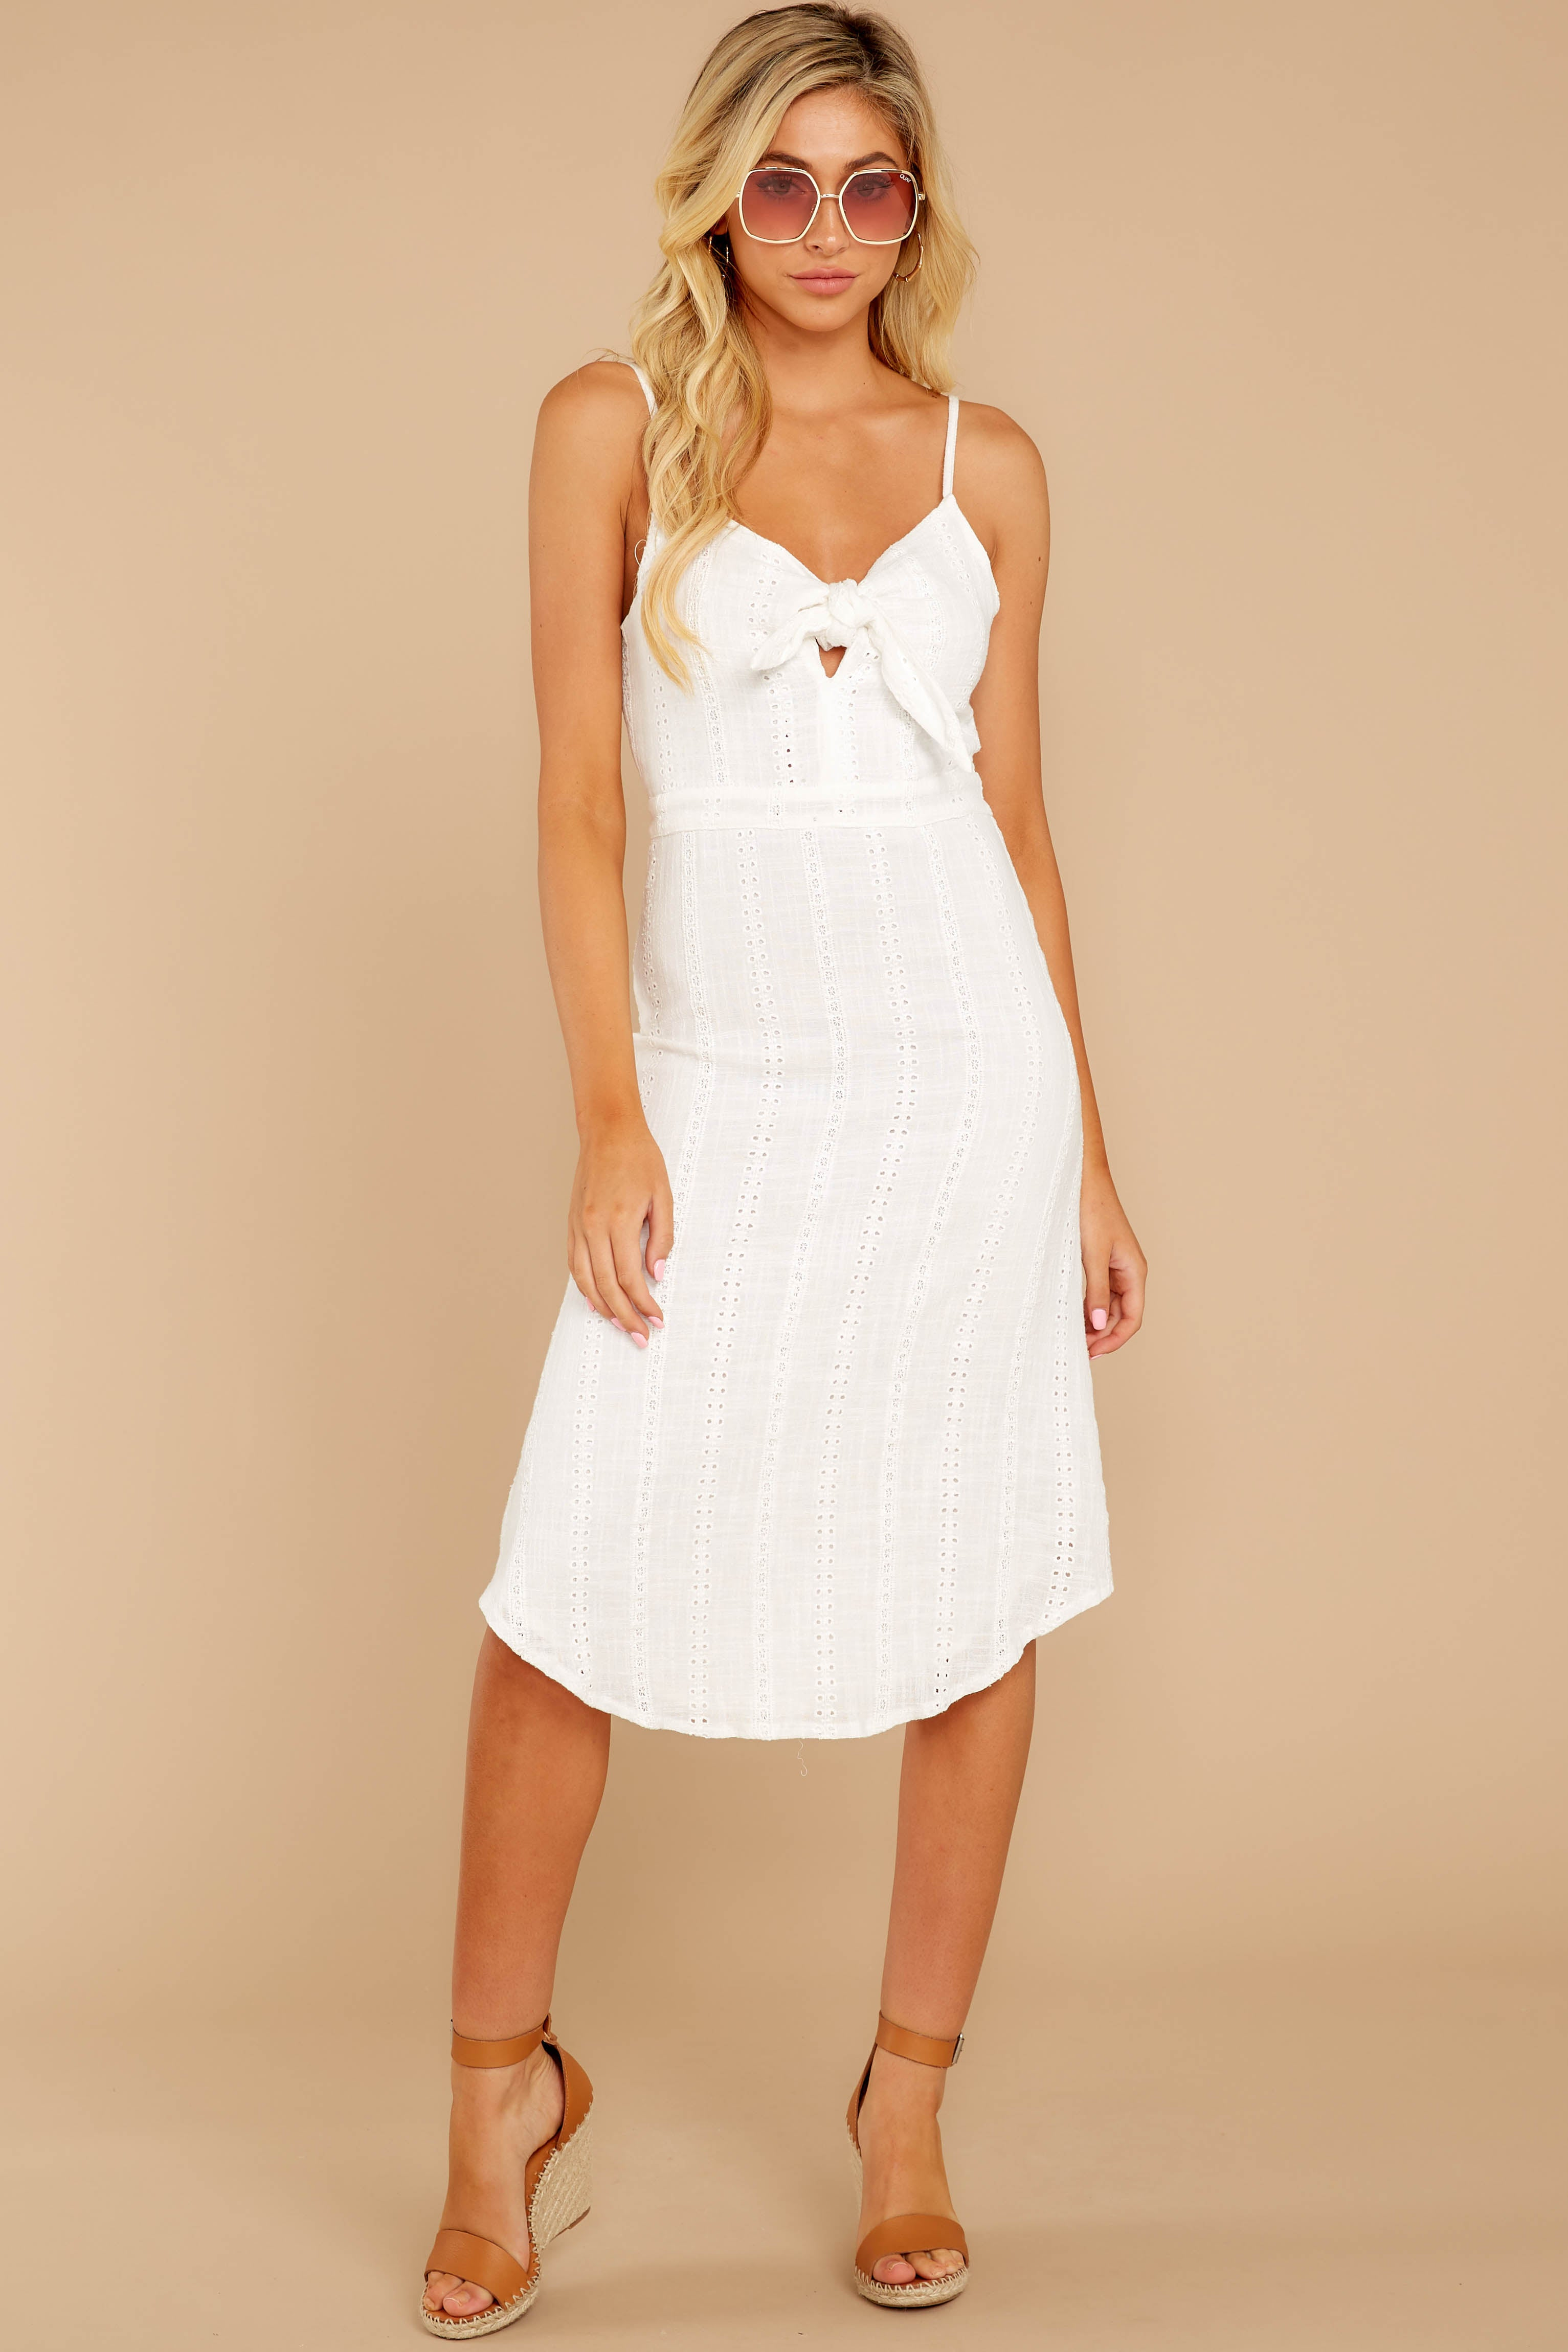 5 Impression Of Love White Eyelet Midi Dress at reddress.com